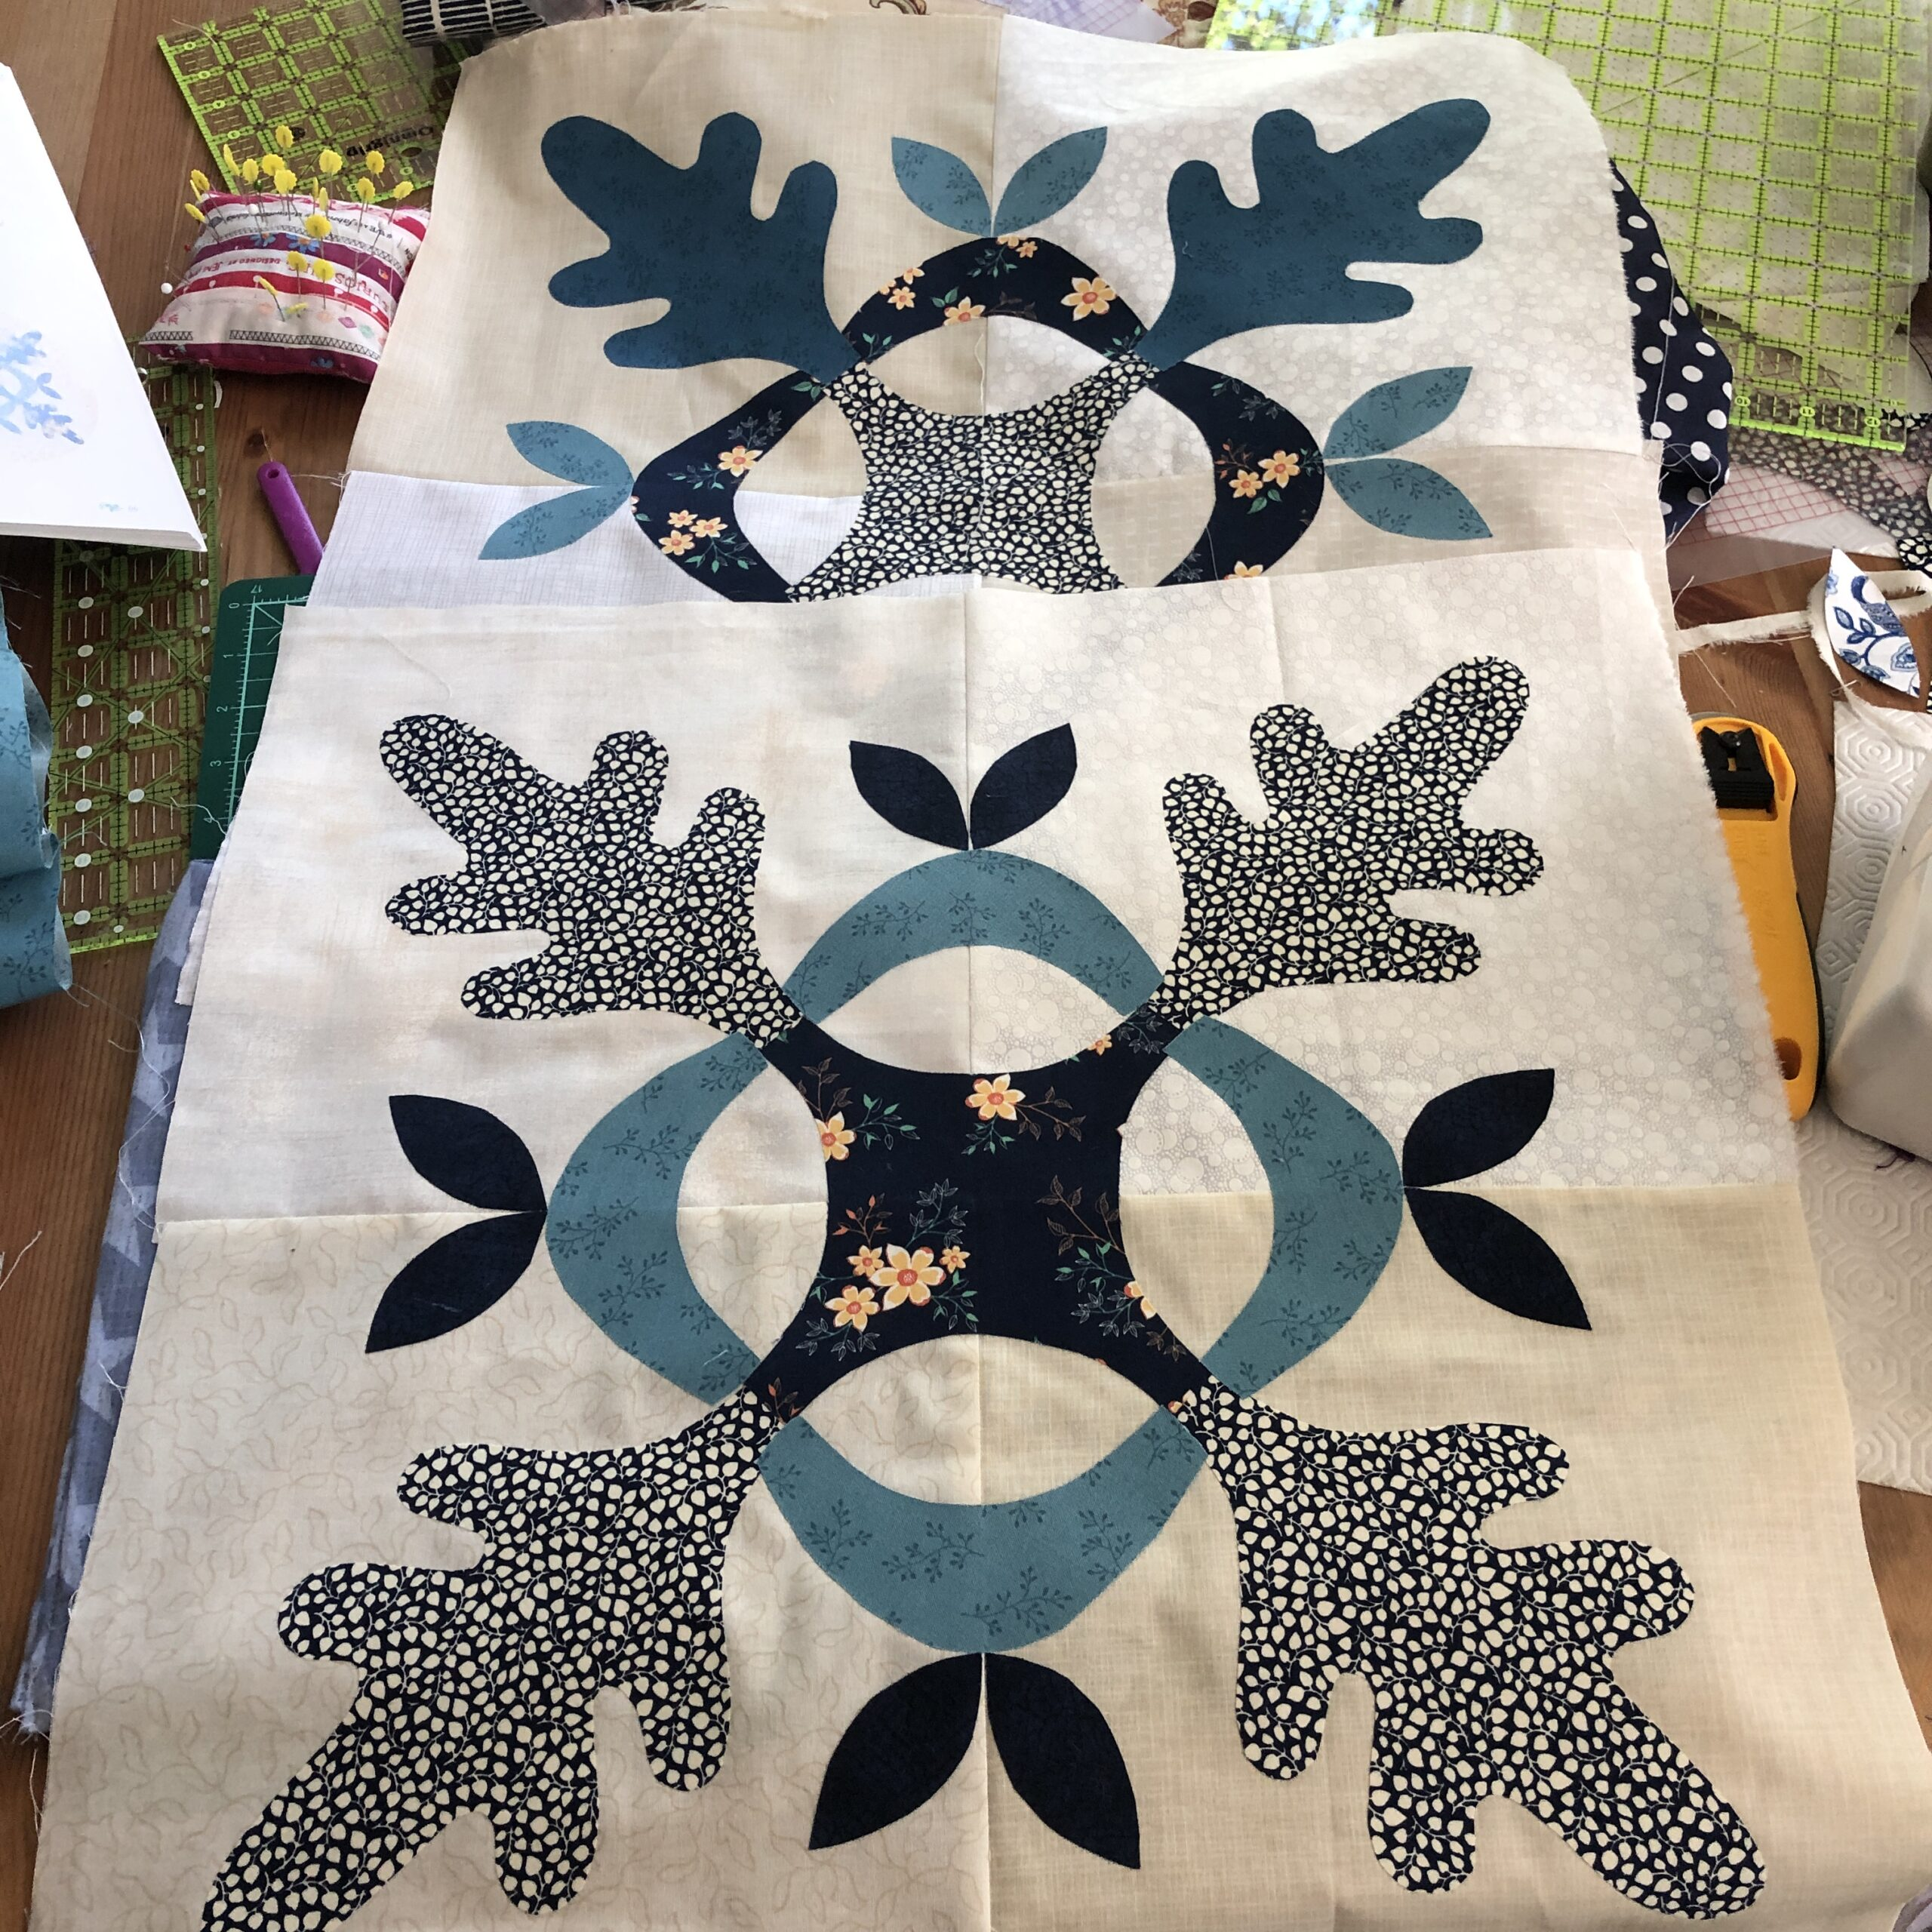 Working on Thousand Oaks quilt by Edyta Sitar